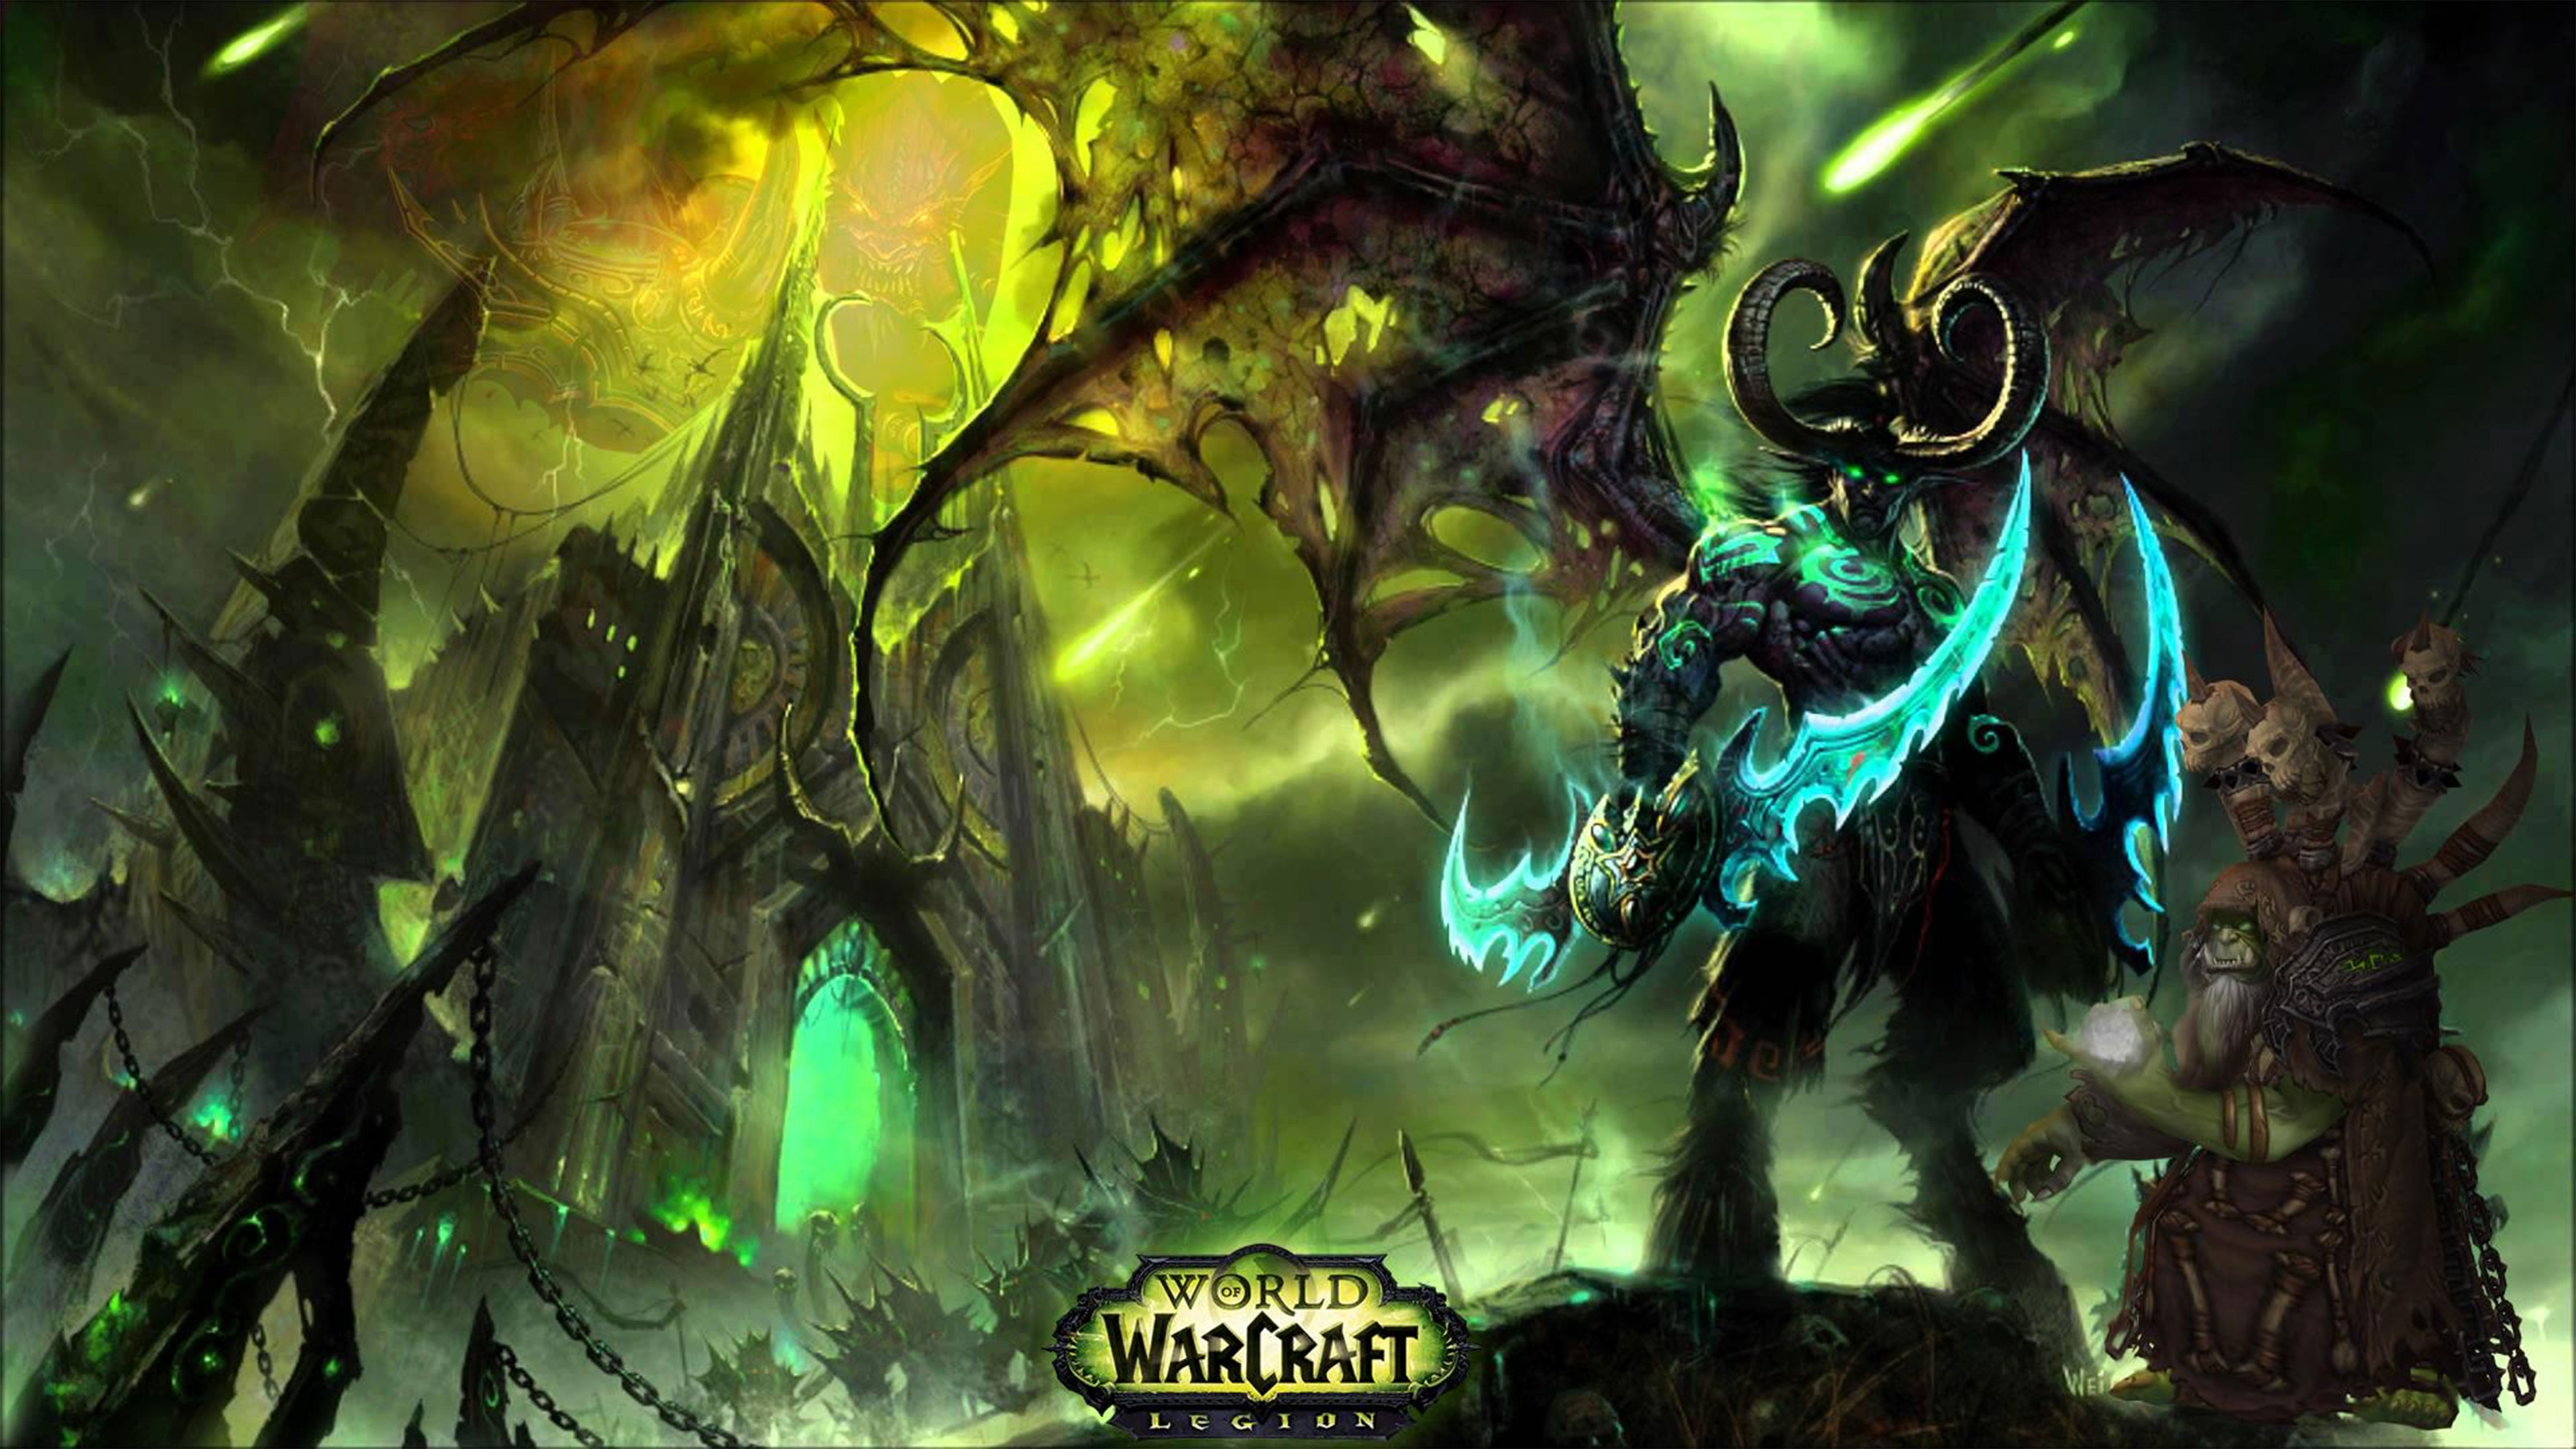 World of Warcraft Legion Wallpapers in Ultra HD